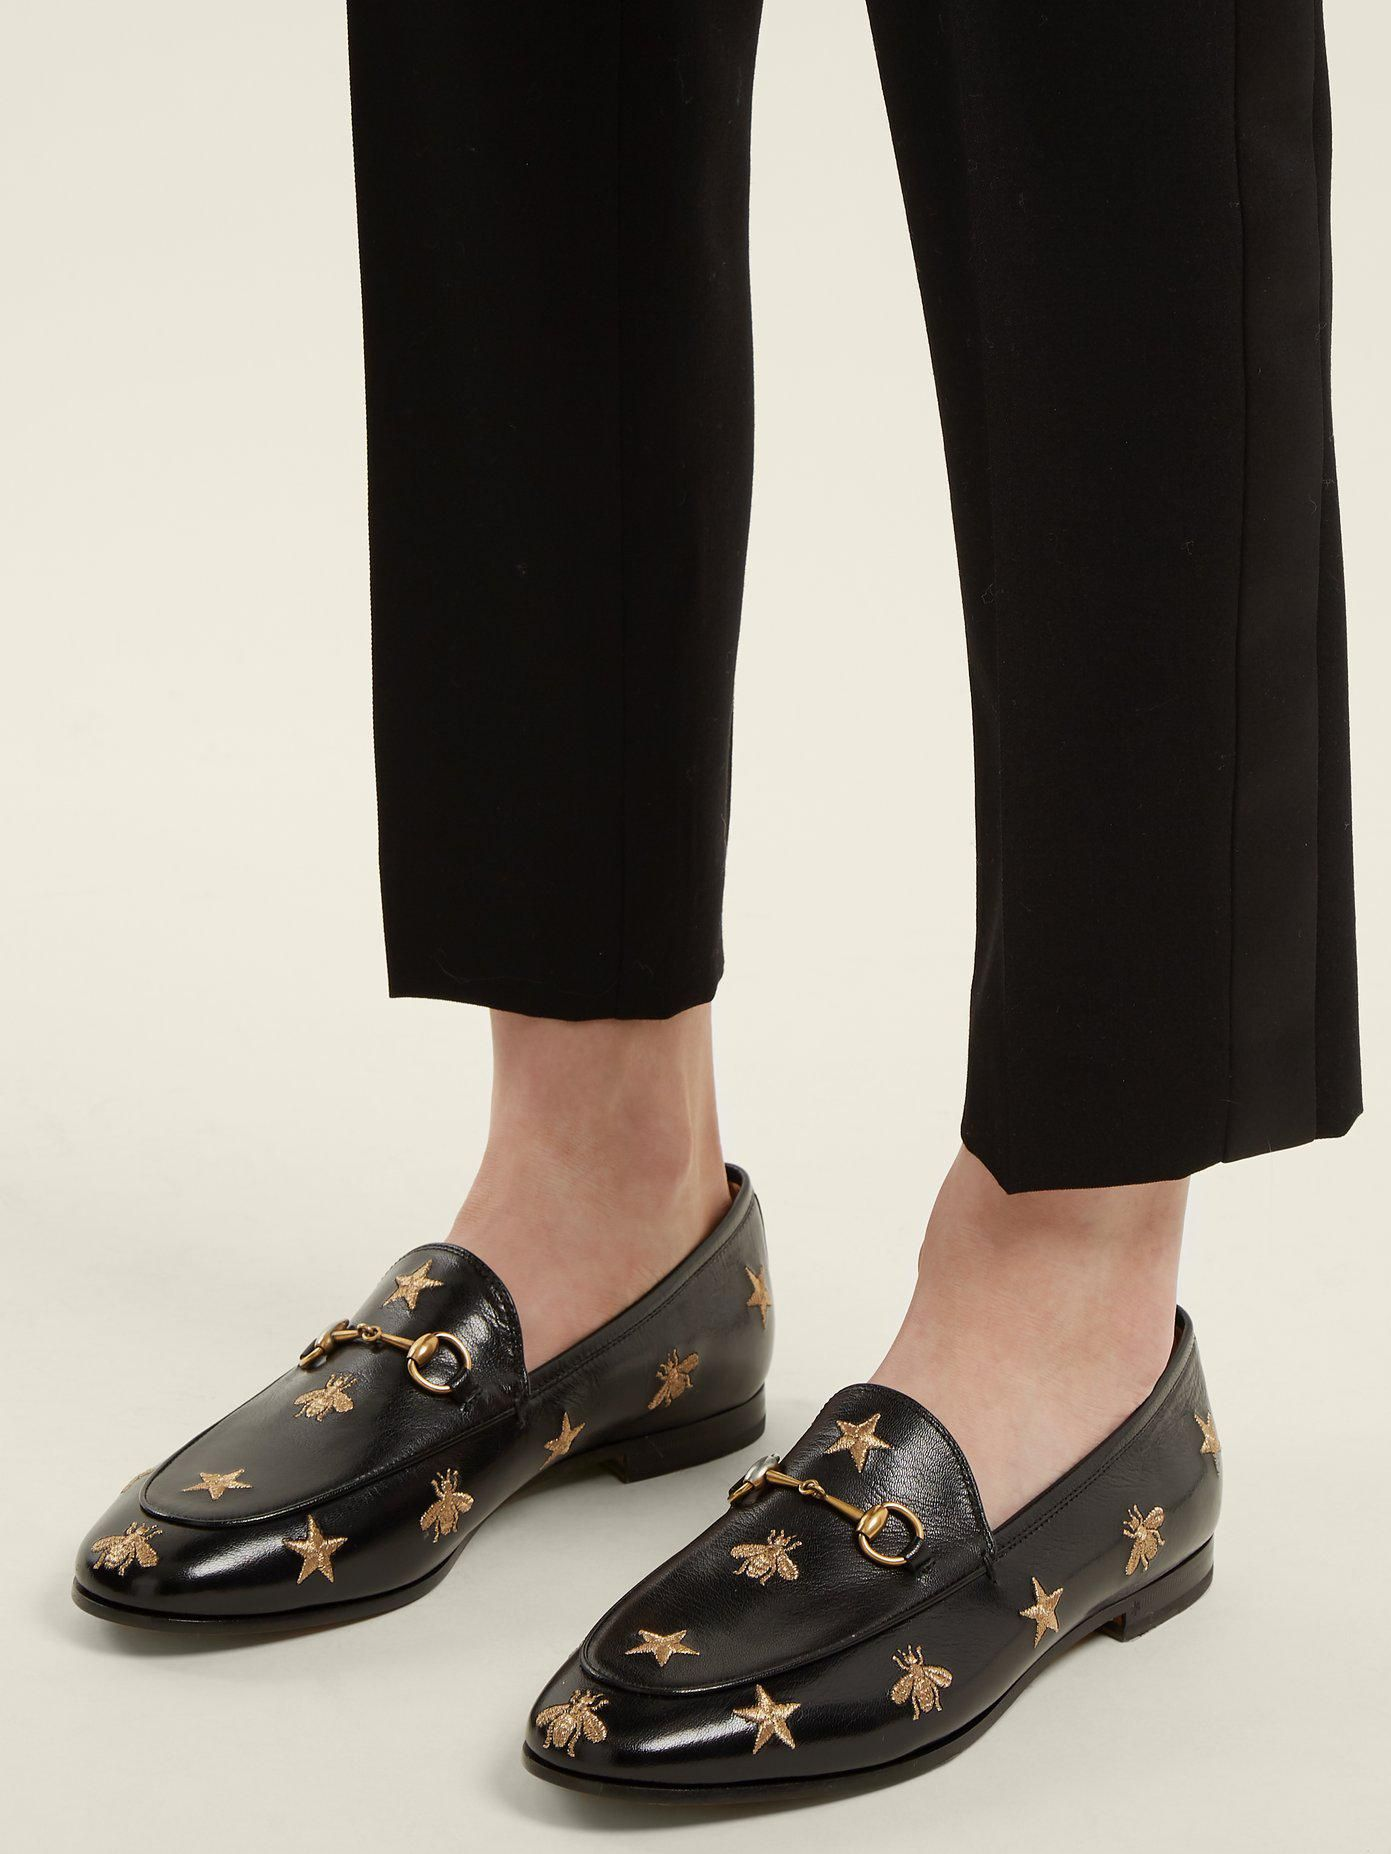 7472deb38 Women's Black Jordaan Bee Embroidered Loafers in 2019 | Shoes ...